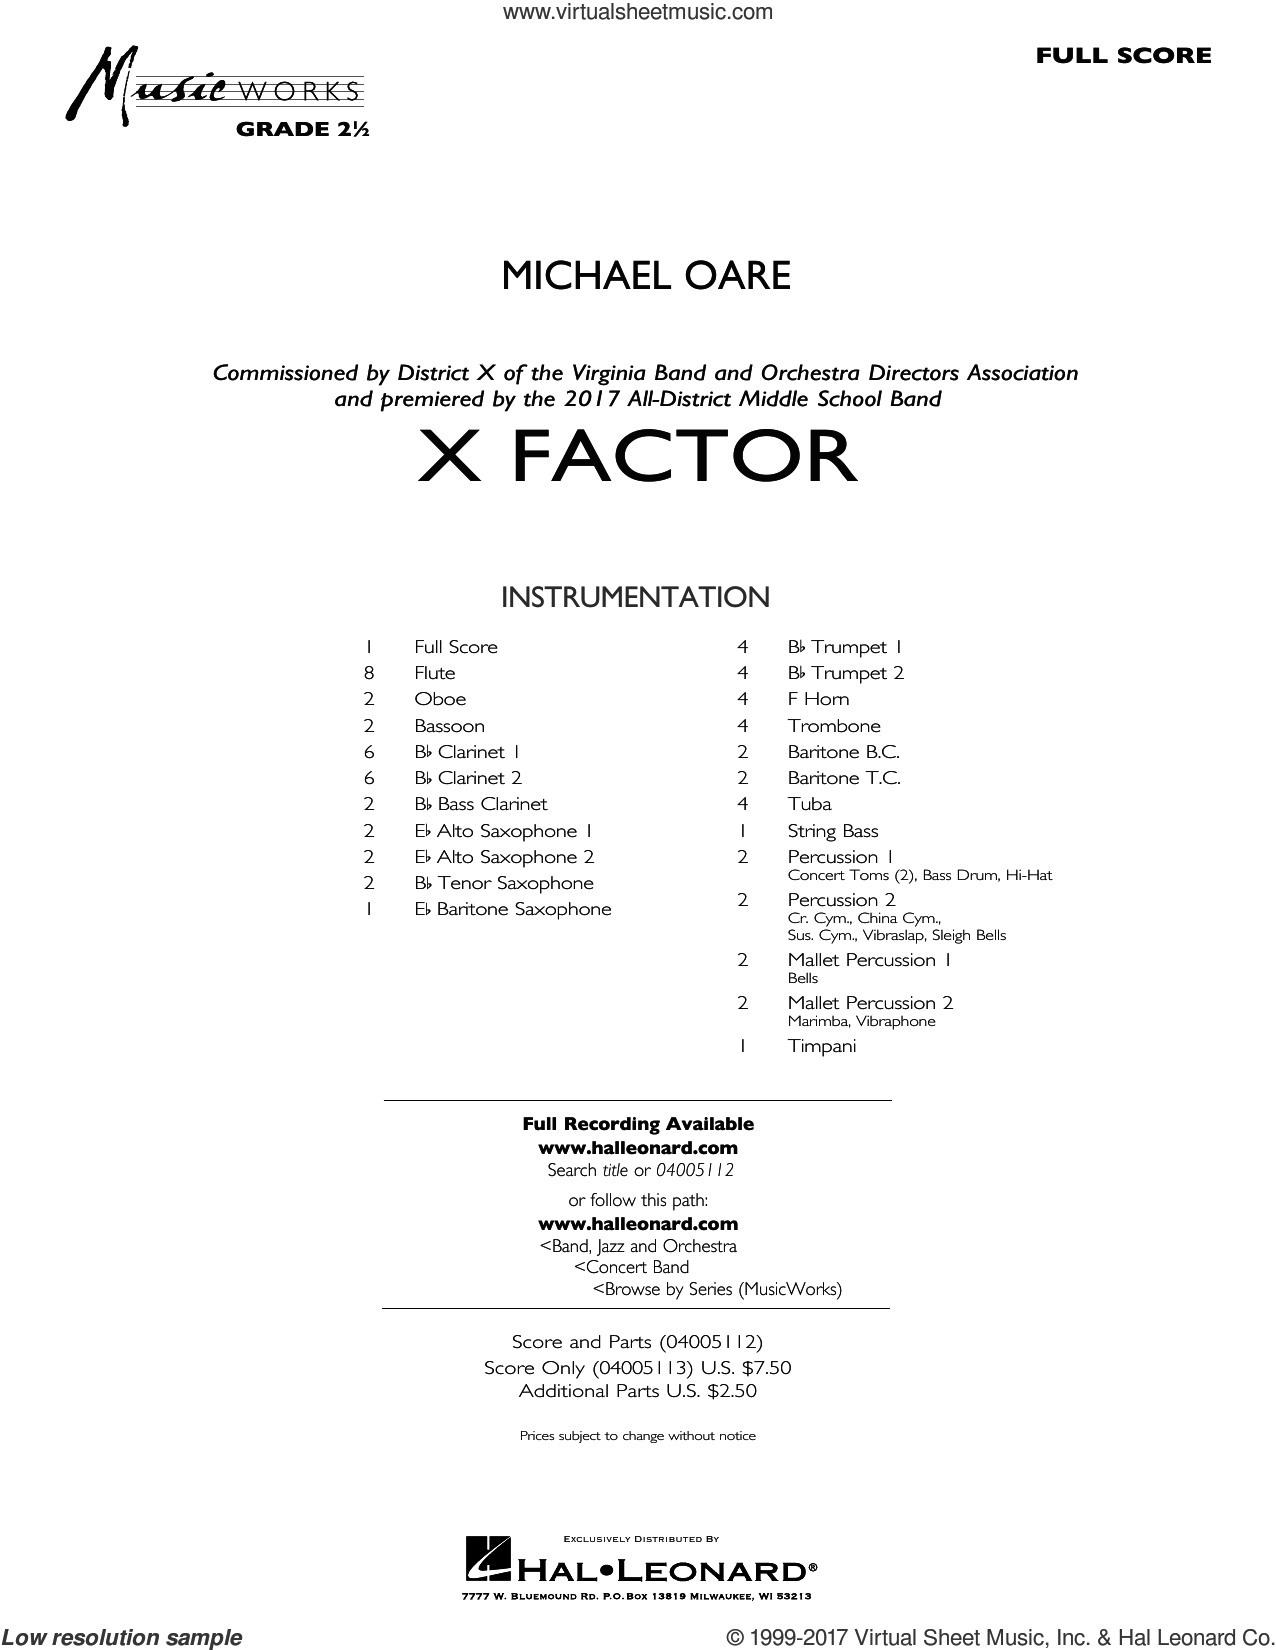 Oare - X Factor sheet music (complete collection) for concert band